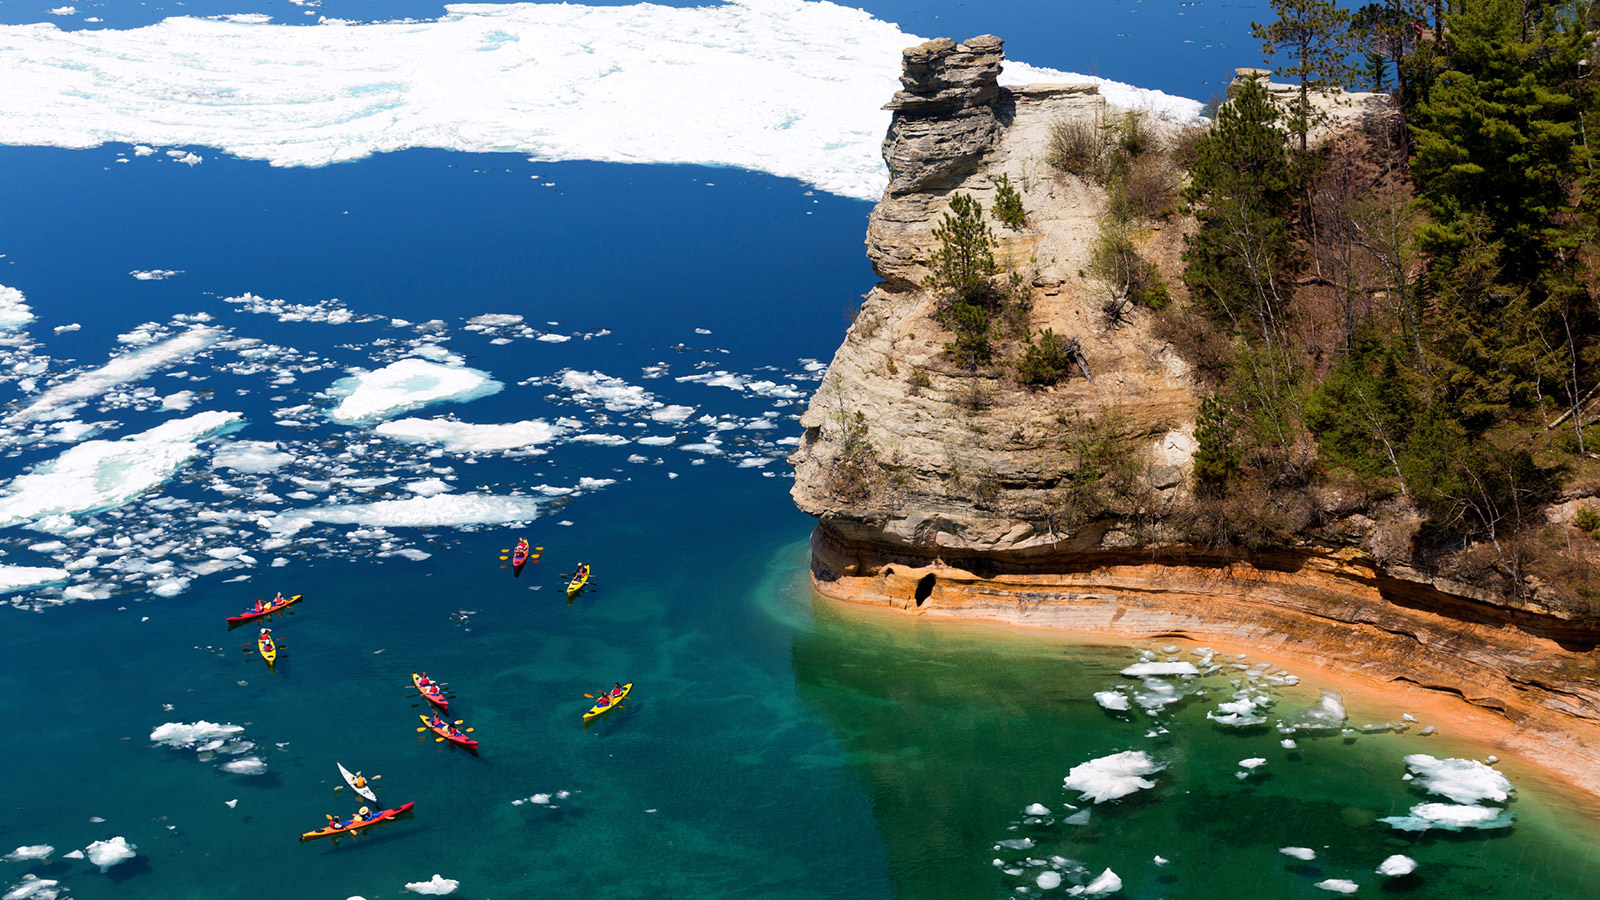 Best-places-to-travel-in-At-picture-rocks-kayakers-prepare-to-take-on-a-wet-glacial-run-wallpaper-wp3403196